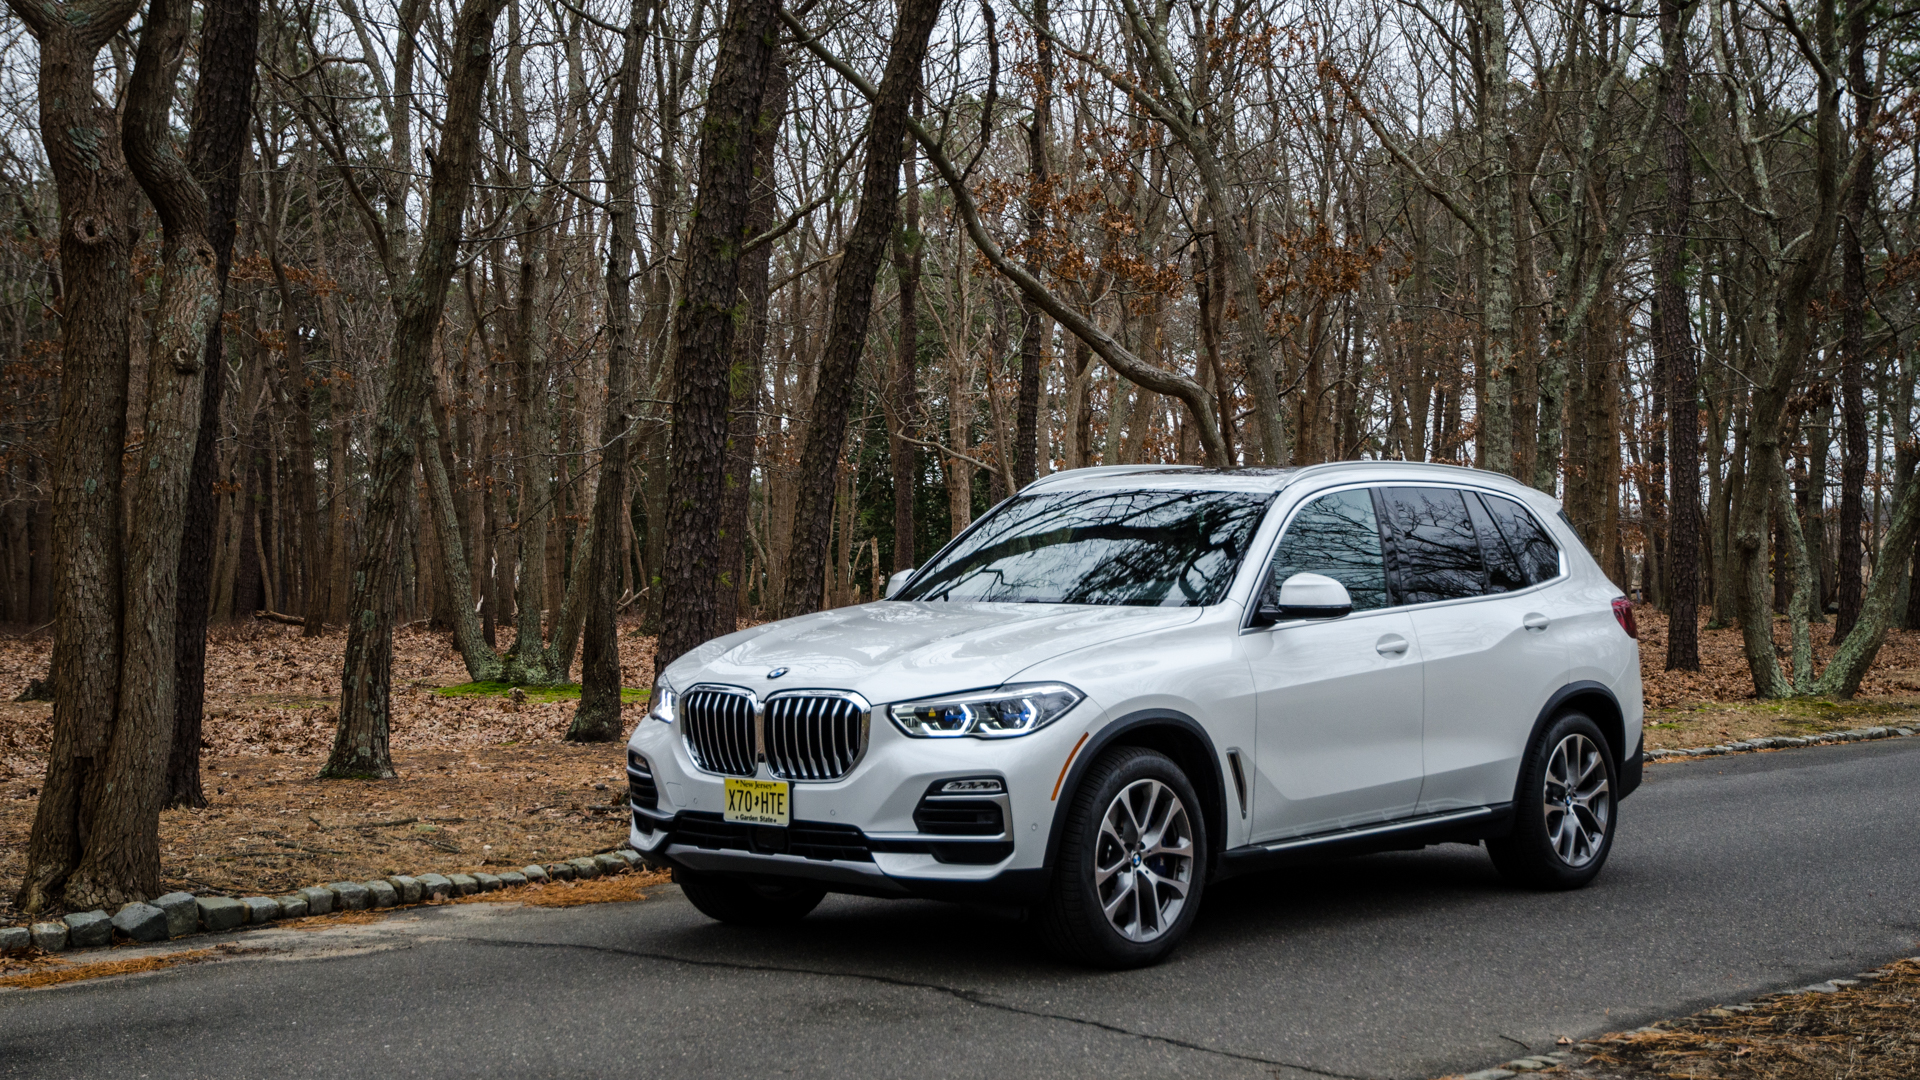 2019 BMW X5 xDrive40i 6 of 46